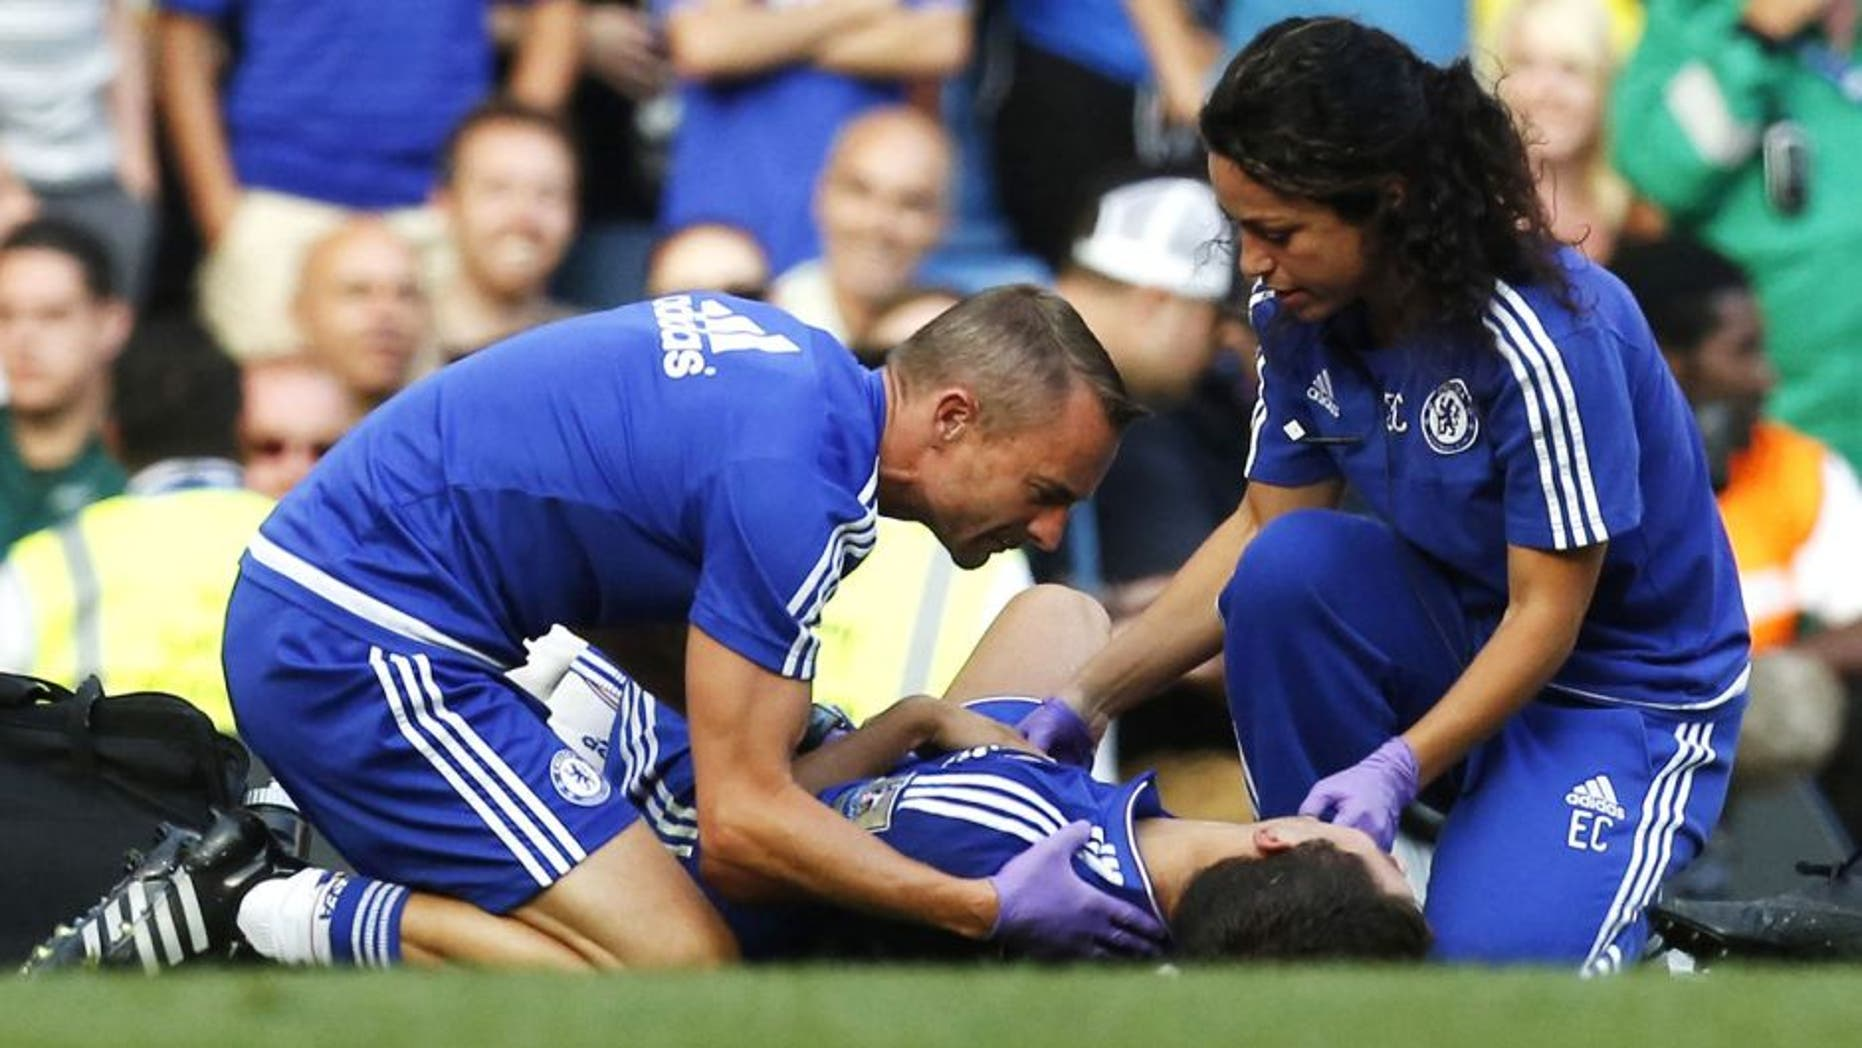 "Chelsea doctor (R) Eva Carneiro and head physio Jon Fearn (L) treat Chelsea's Belgian midfielder Eden Hazard late on during the English Premier League football match between Chelsea and Swansea City at Stamford Bridge in London on August 8, 2015. Chelsea have sidelined team doctor Eva Carneiro from match-day duties after she fell foul of manager Jose Mourinho, according to British media reports on August 11, 2015. Mourinho criticised Carneiro after she ran on the pitch to treat Eden Hazard in stoppage time of Chelsea's 2-2 draw at home to Swansea City on August 8, saying she did not ""understand the game"". AFP PHOTO / IAN KINGTON RESTRICTED TO EDITORIAL USE. No use with unauthorized audio, video, data, fixture lists, club/league logos or 'live' services. Online in-match use limited to 75 images, no video emulation. No use in betting, games or single club/league/player publications. (Photo credit should read IAN KINGTON/AFP/Getty Images)"